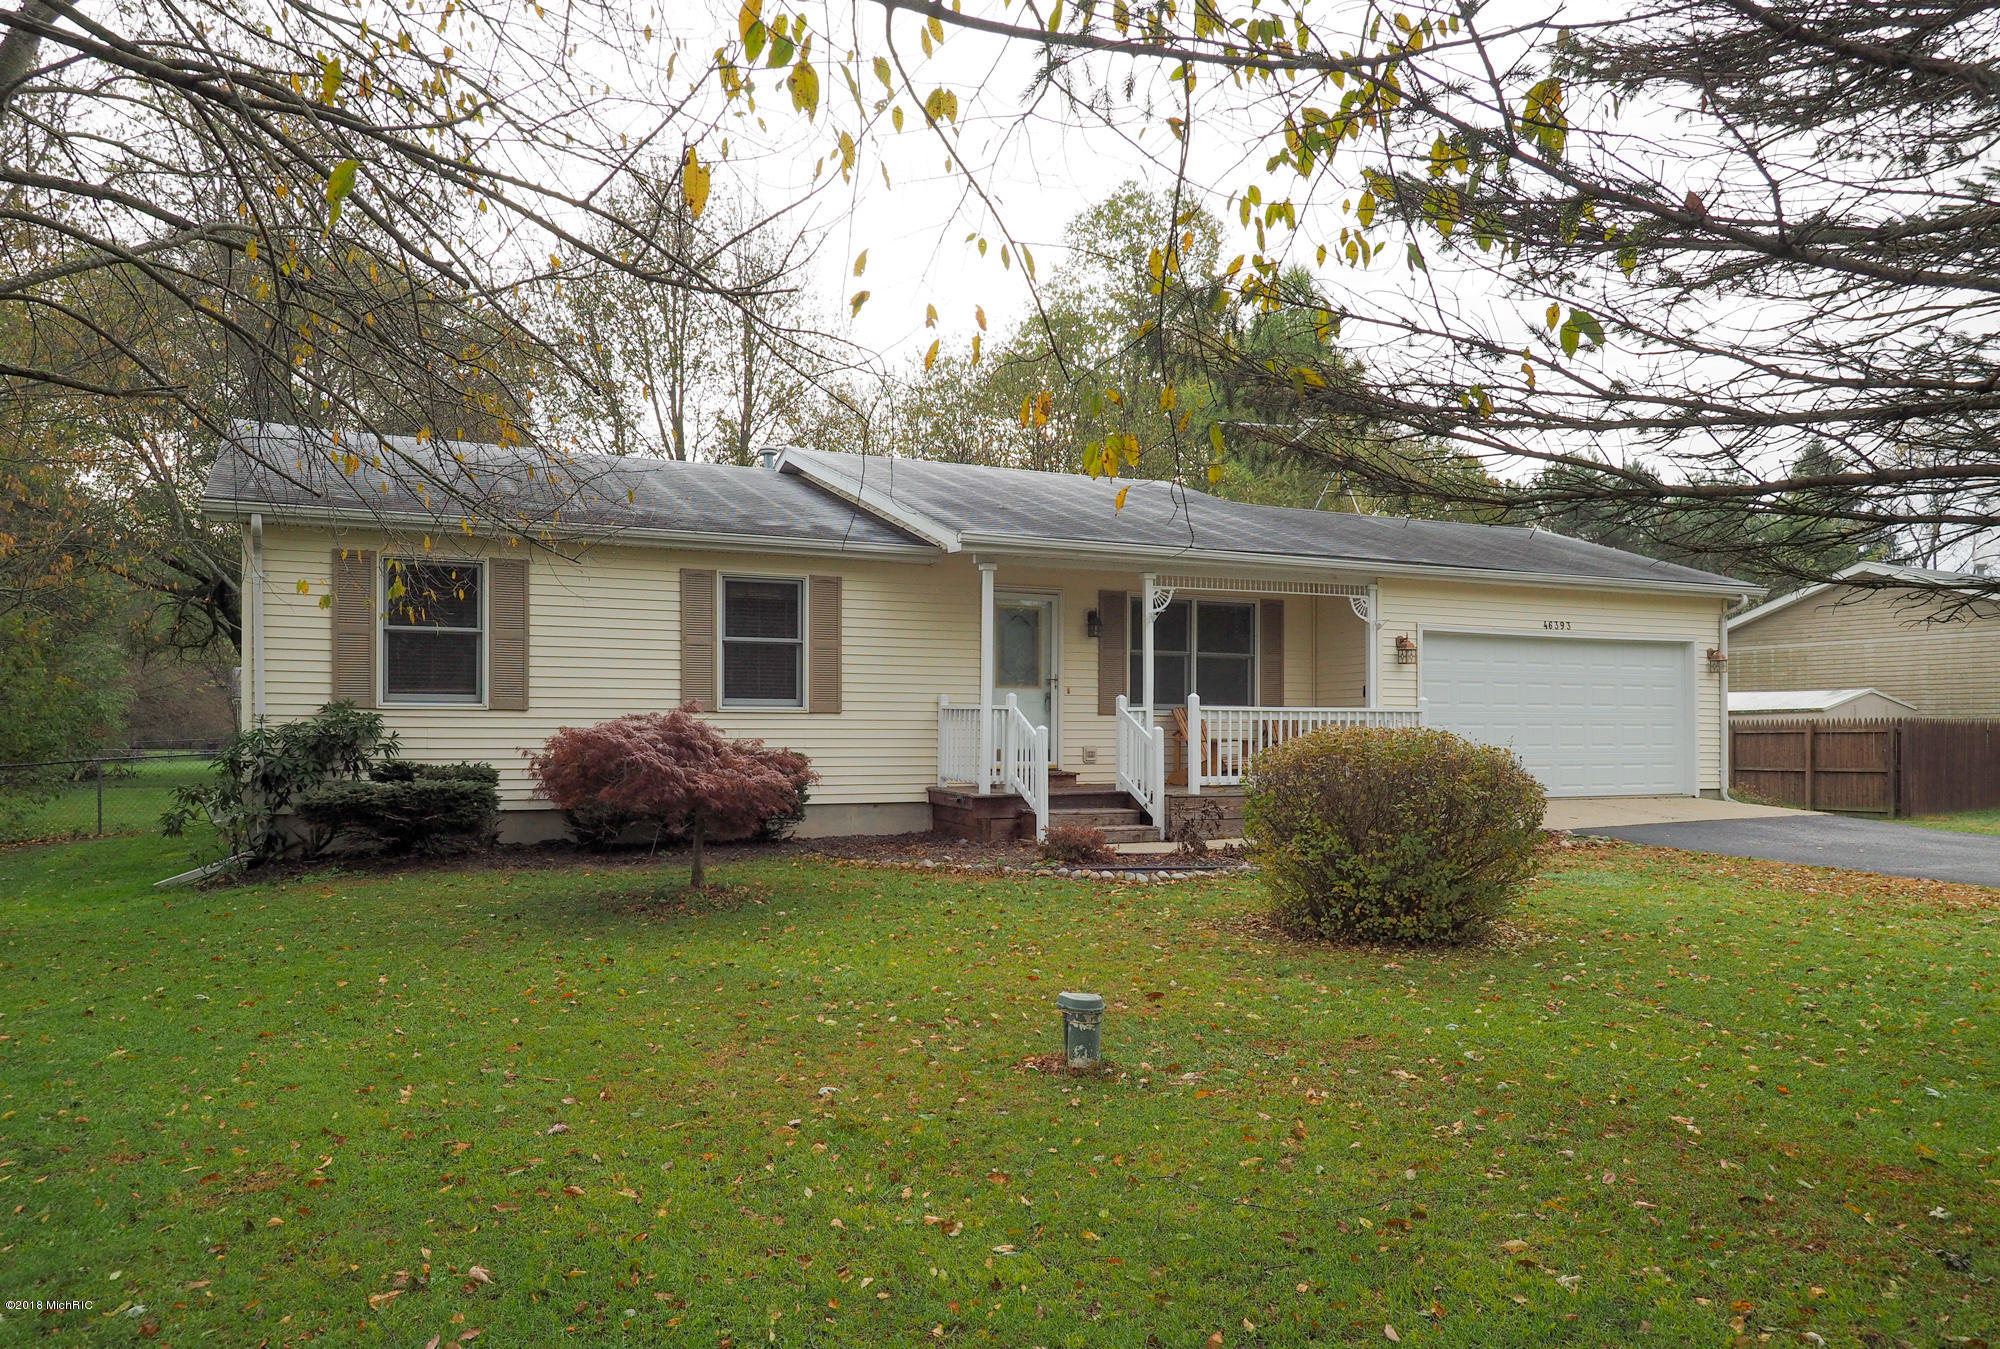 Photo for 46393 Co Rd 653, Paw Paw, MI 49079 (MLS # 18052746)